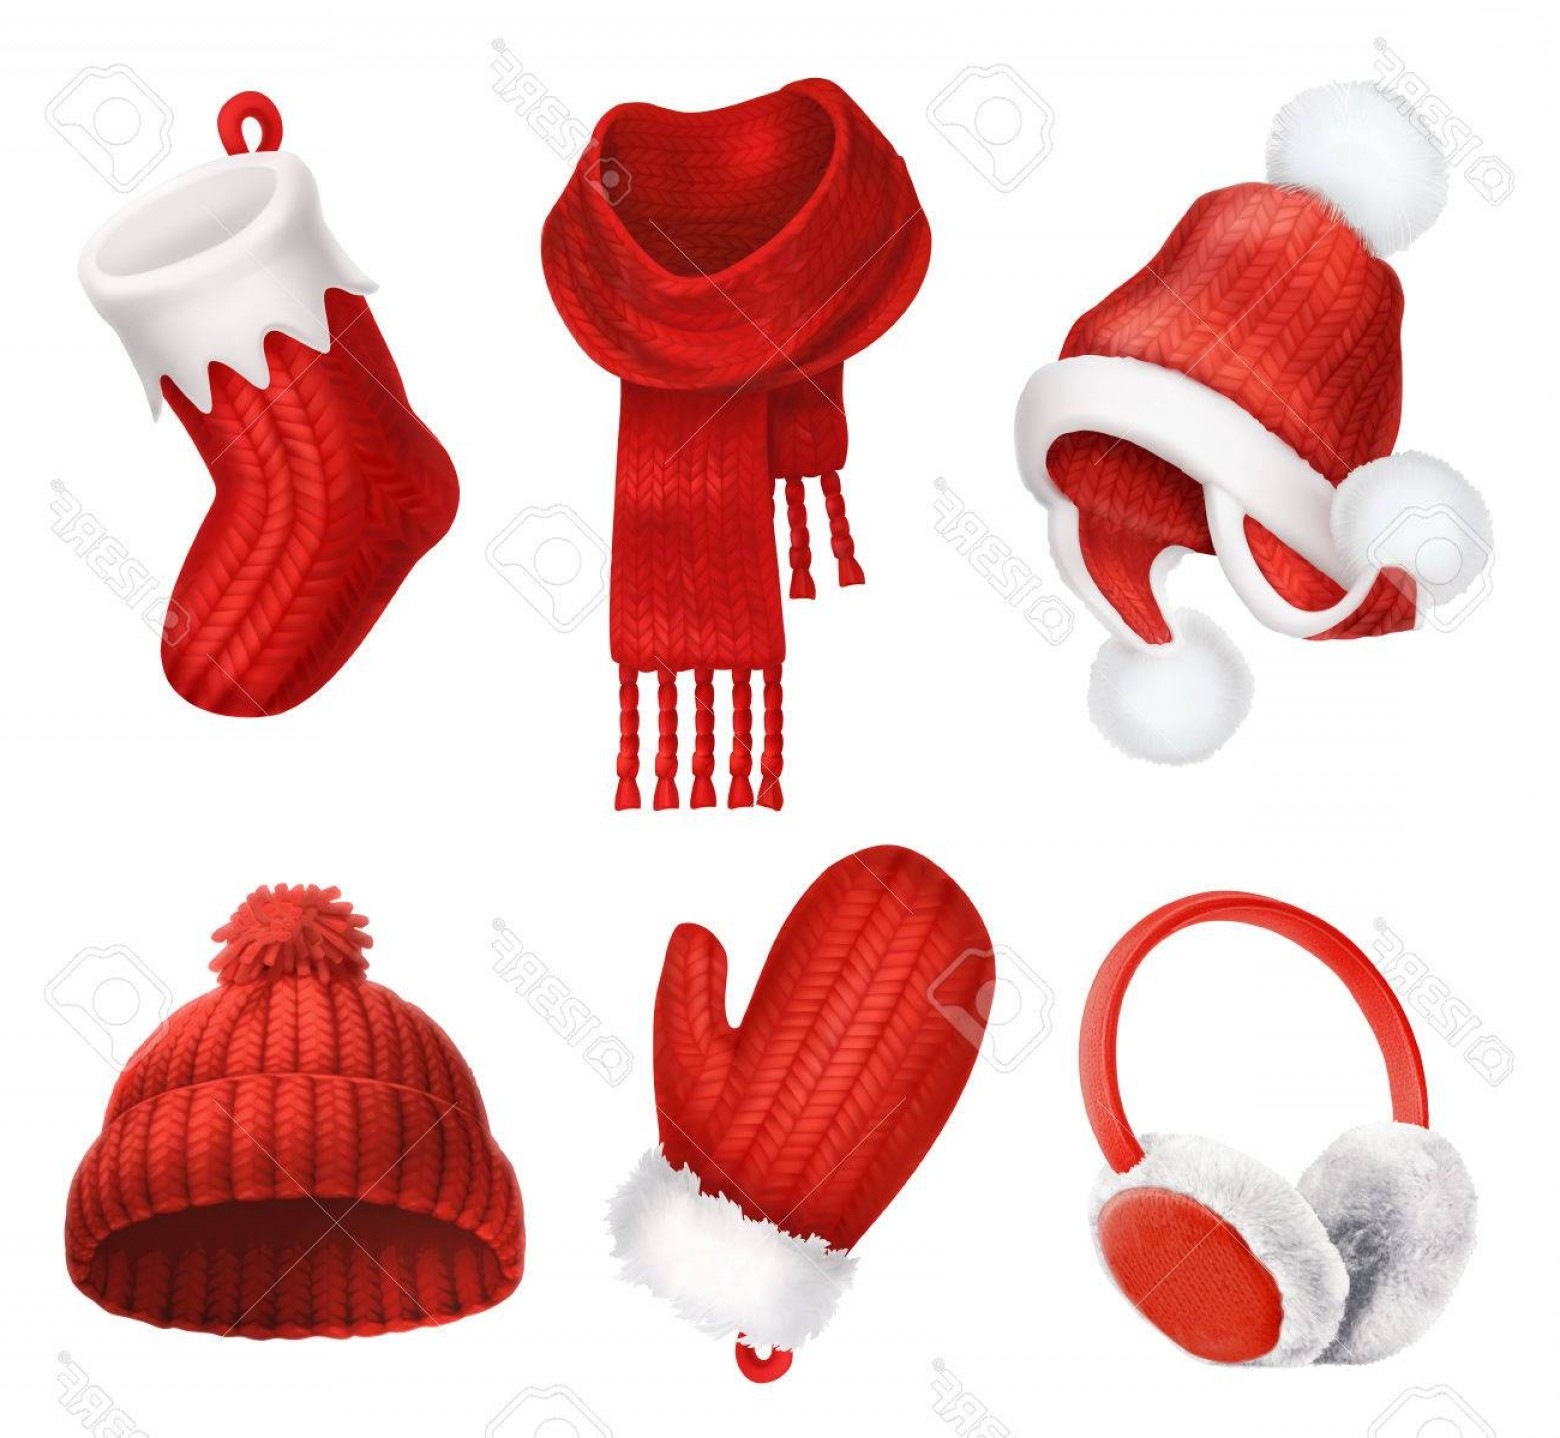 Stocking Hat Vector: Simple Photostock Vector Winter Clothes Knitted Cap Christmas Sock Scarf Mitten Earmuffs D Vector Icon